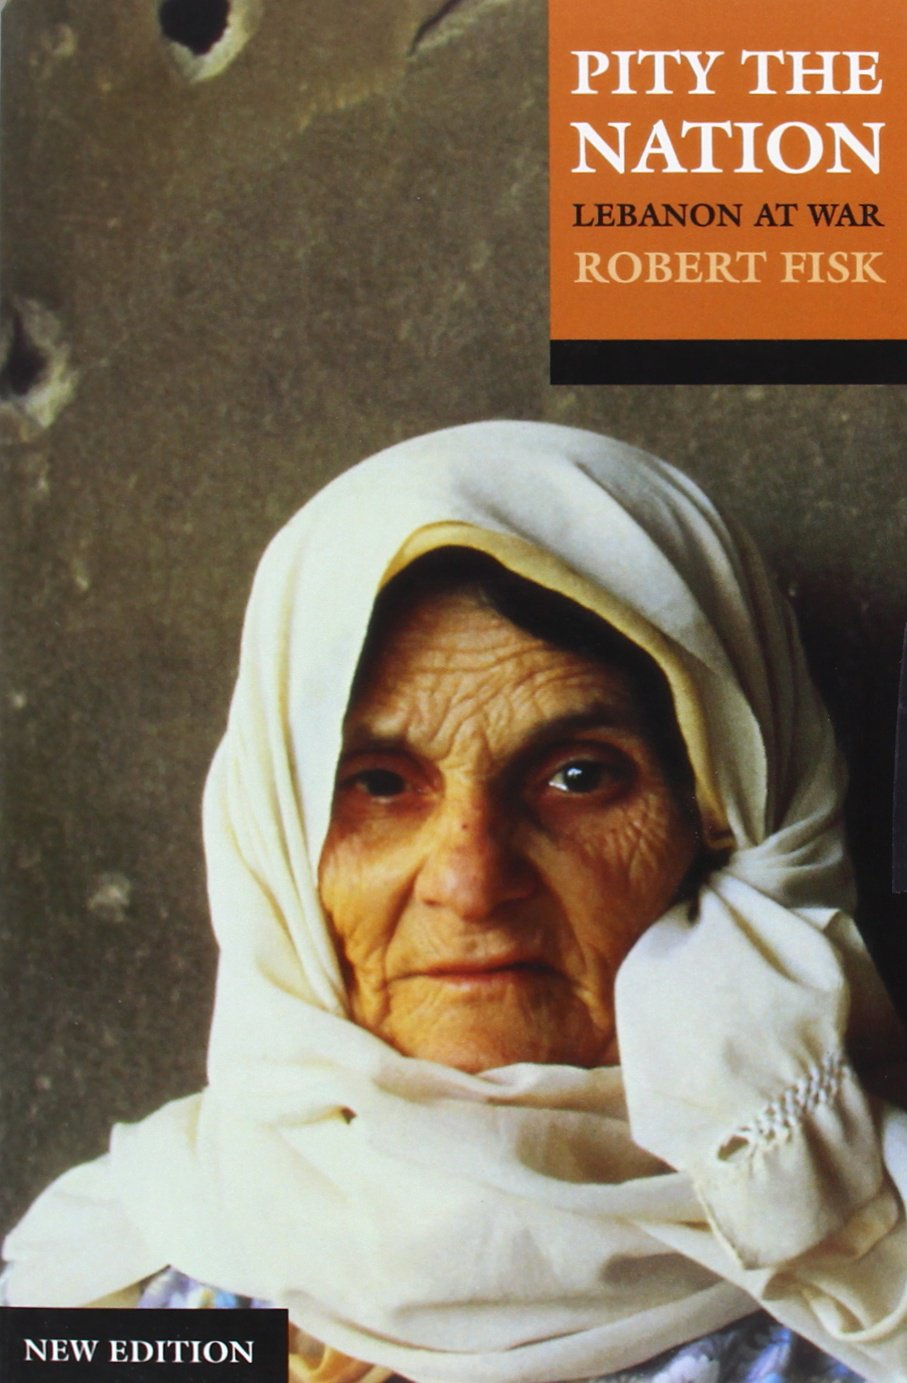 Pity the Nation: Lebanon at War: Amazon.co.uk: Robert Fisk: 8601300129662:  Books